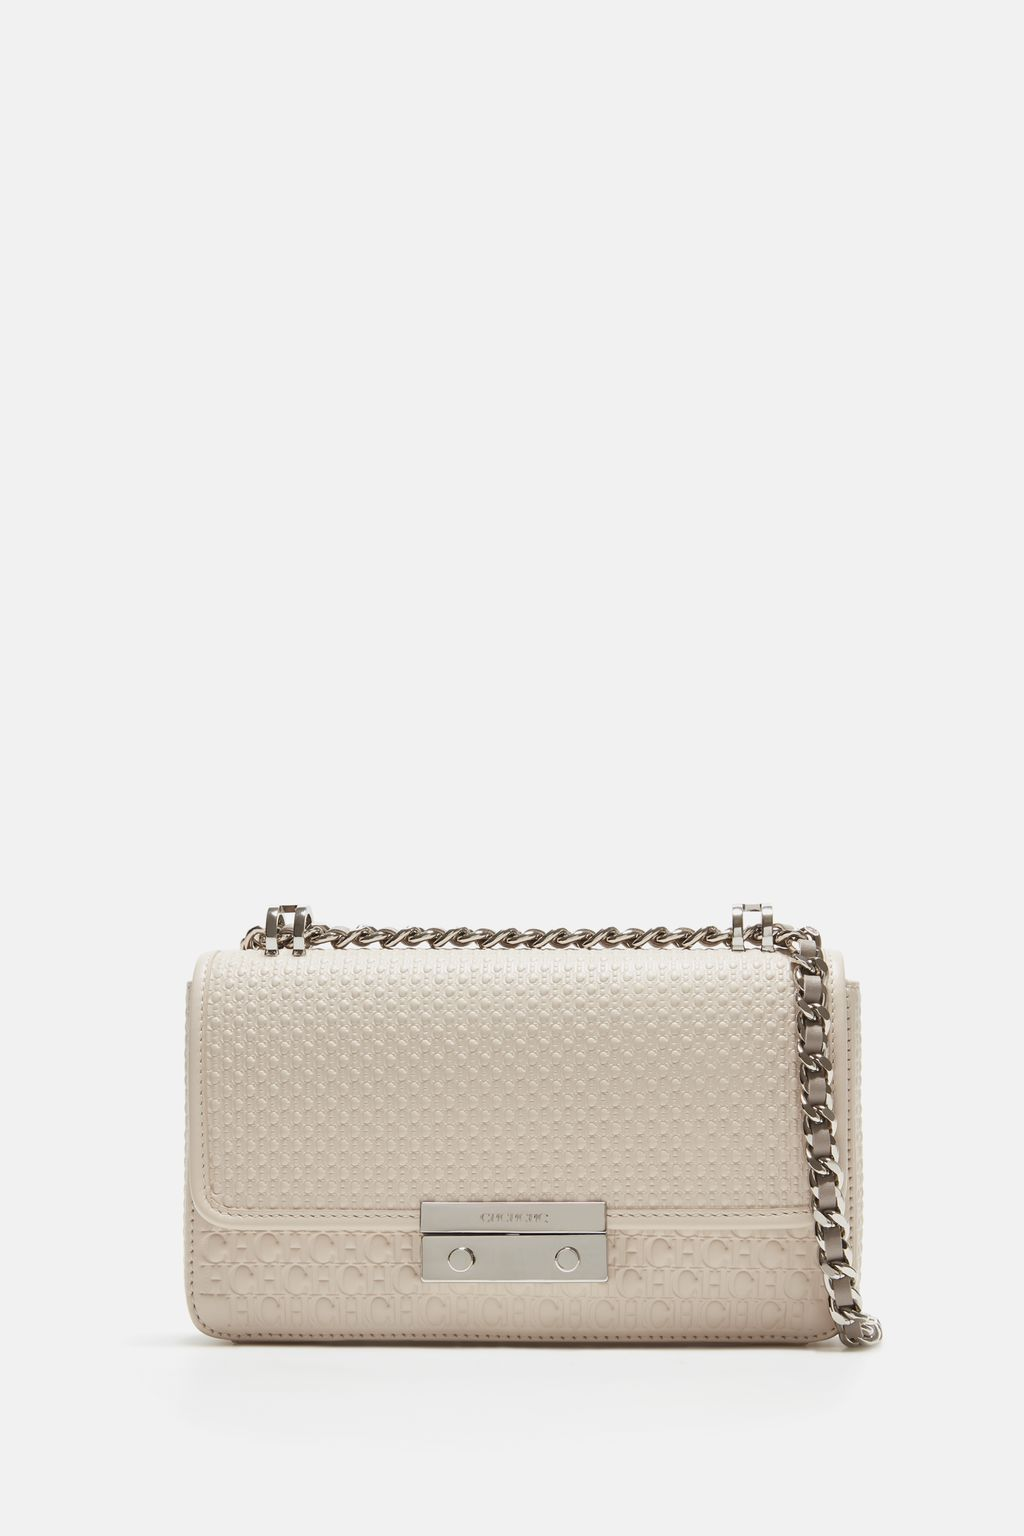 Insignia Mini Rings | Small cross body bag